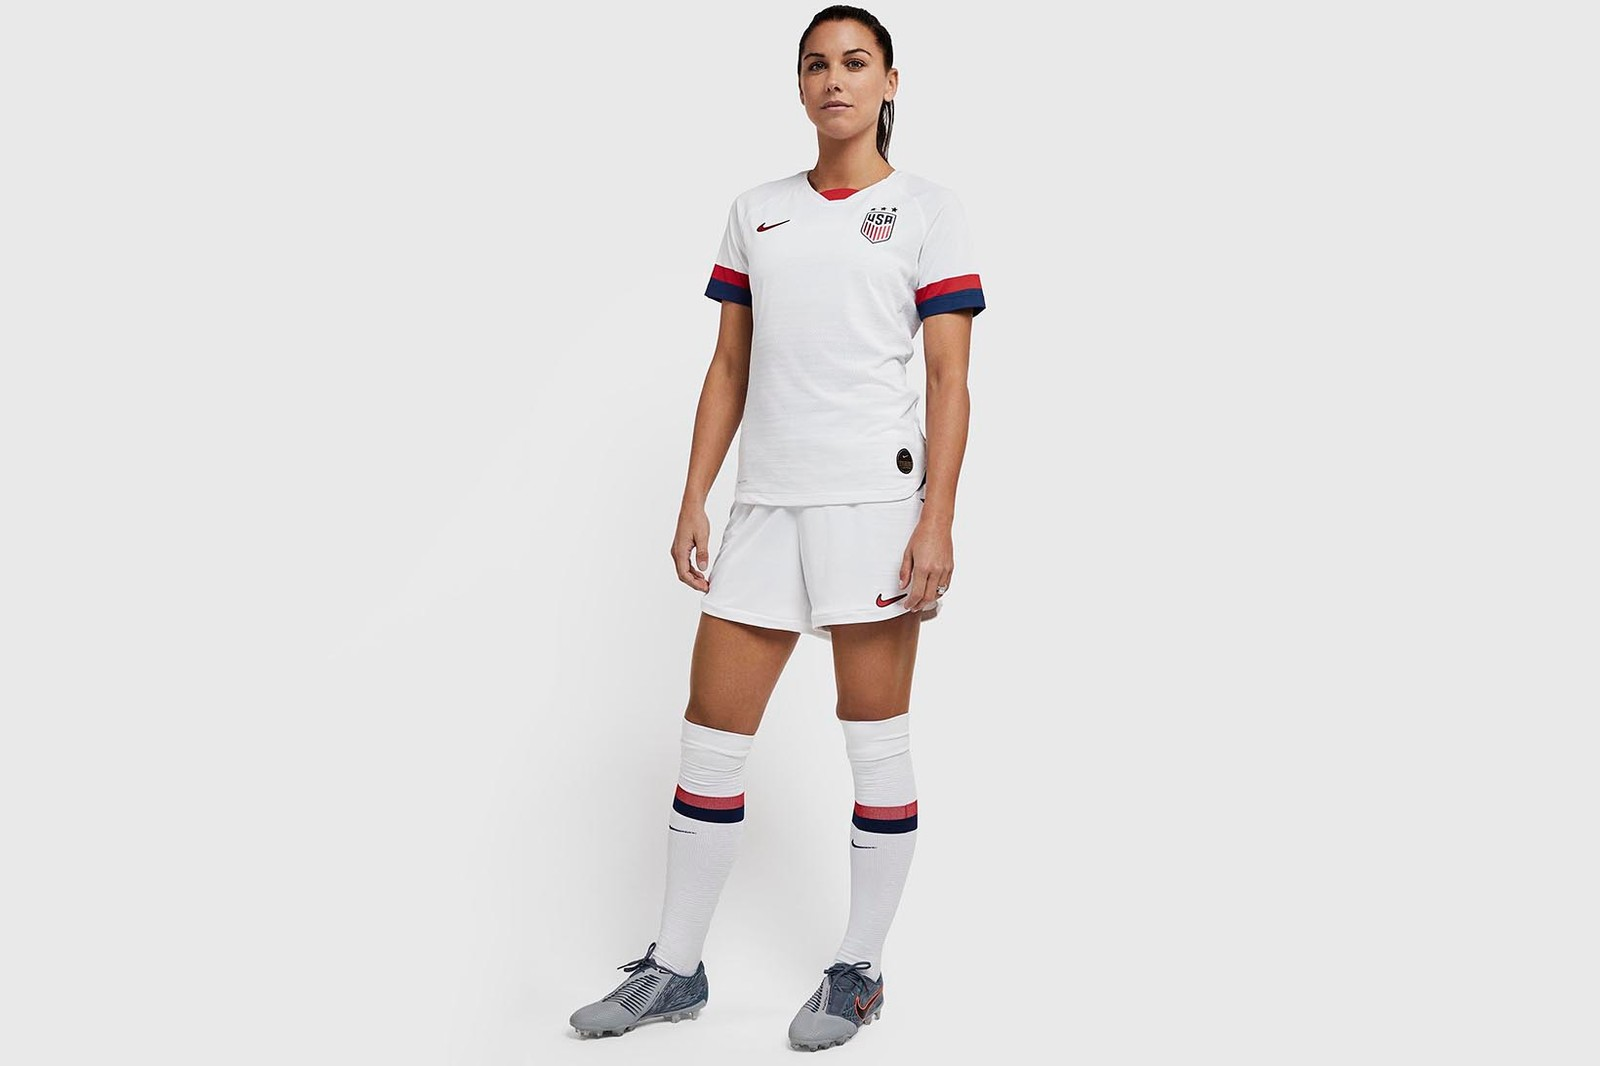 340dff56af7 Alex Morgan US Women's Soccer Football World Cup France 2019 Gender  Discrimination Lawsuit Interview Nike